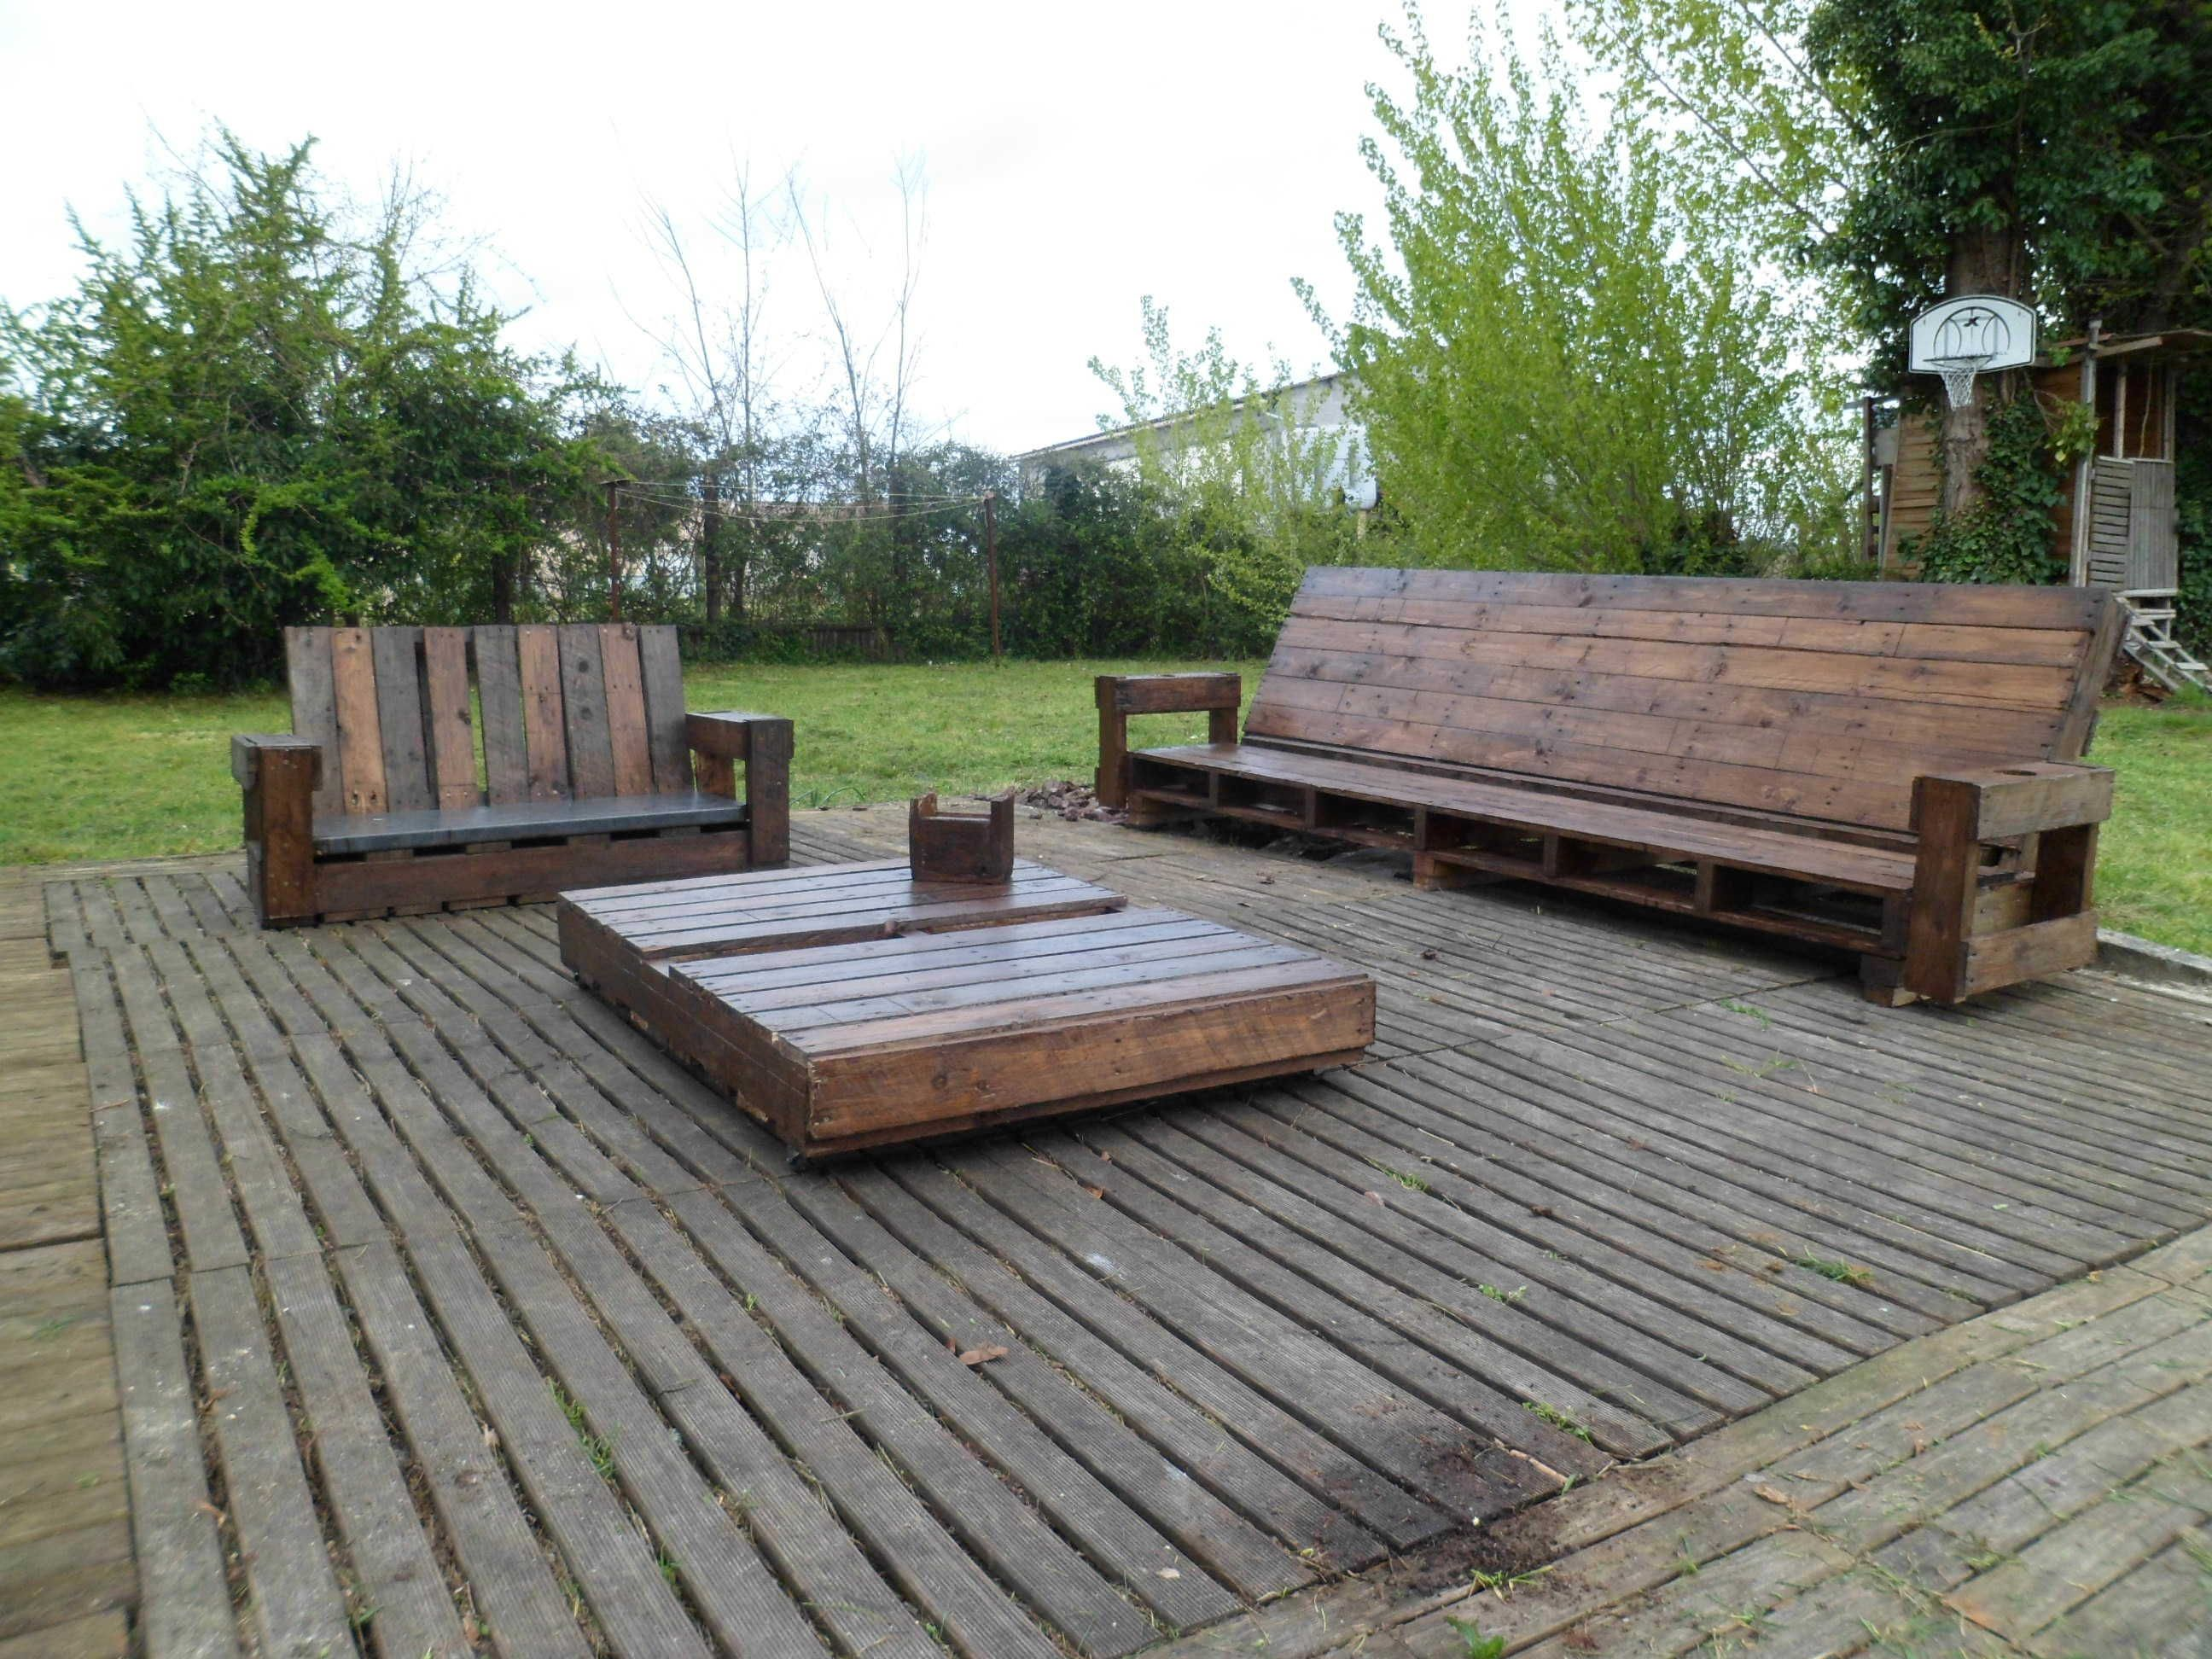 Giant Outdoor Set Made Out Of Repurposed Pallets en 2018 | Pallets ...